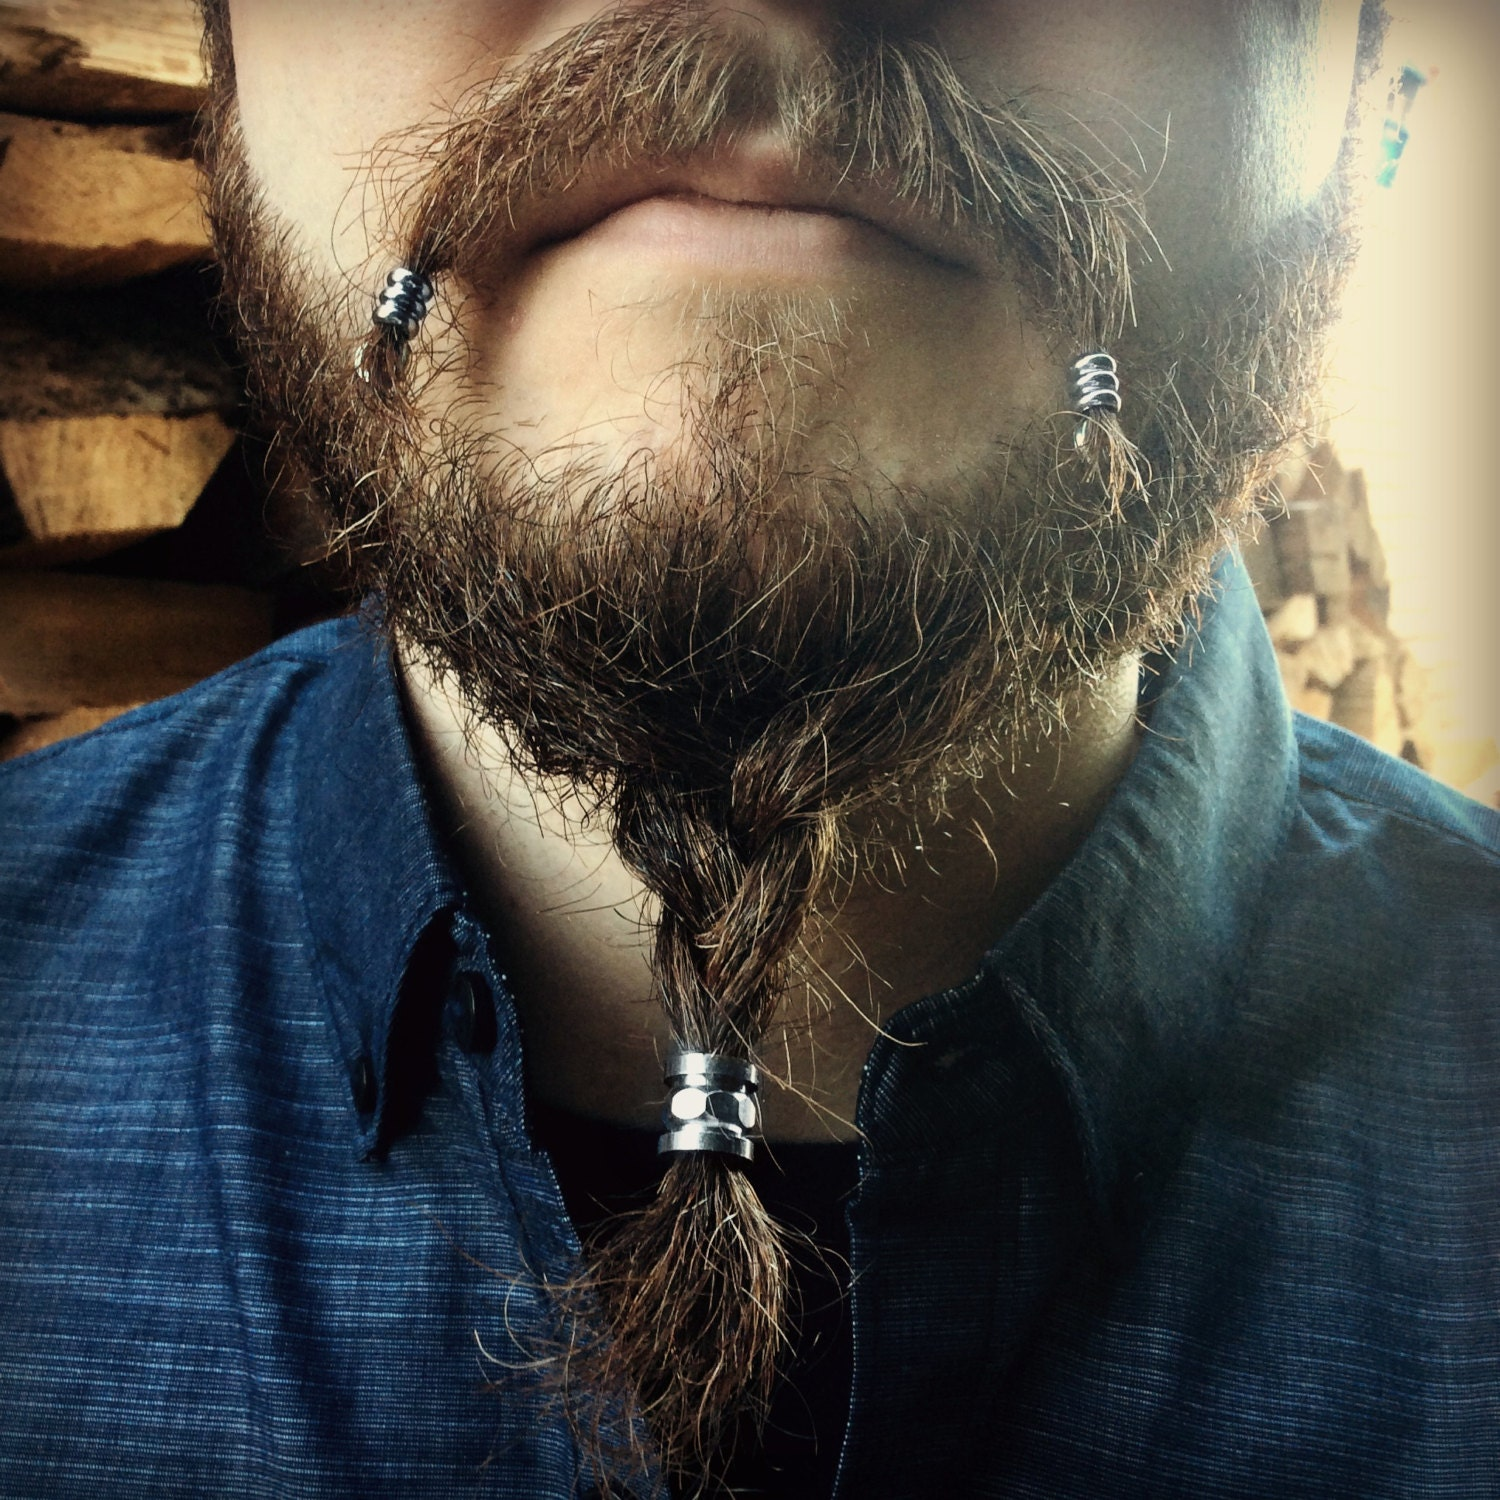 Beard Bead Kit 'Bolton' STAINLESS STEEL industrial beard ...